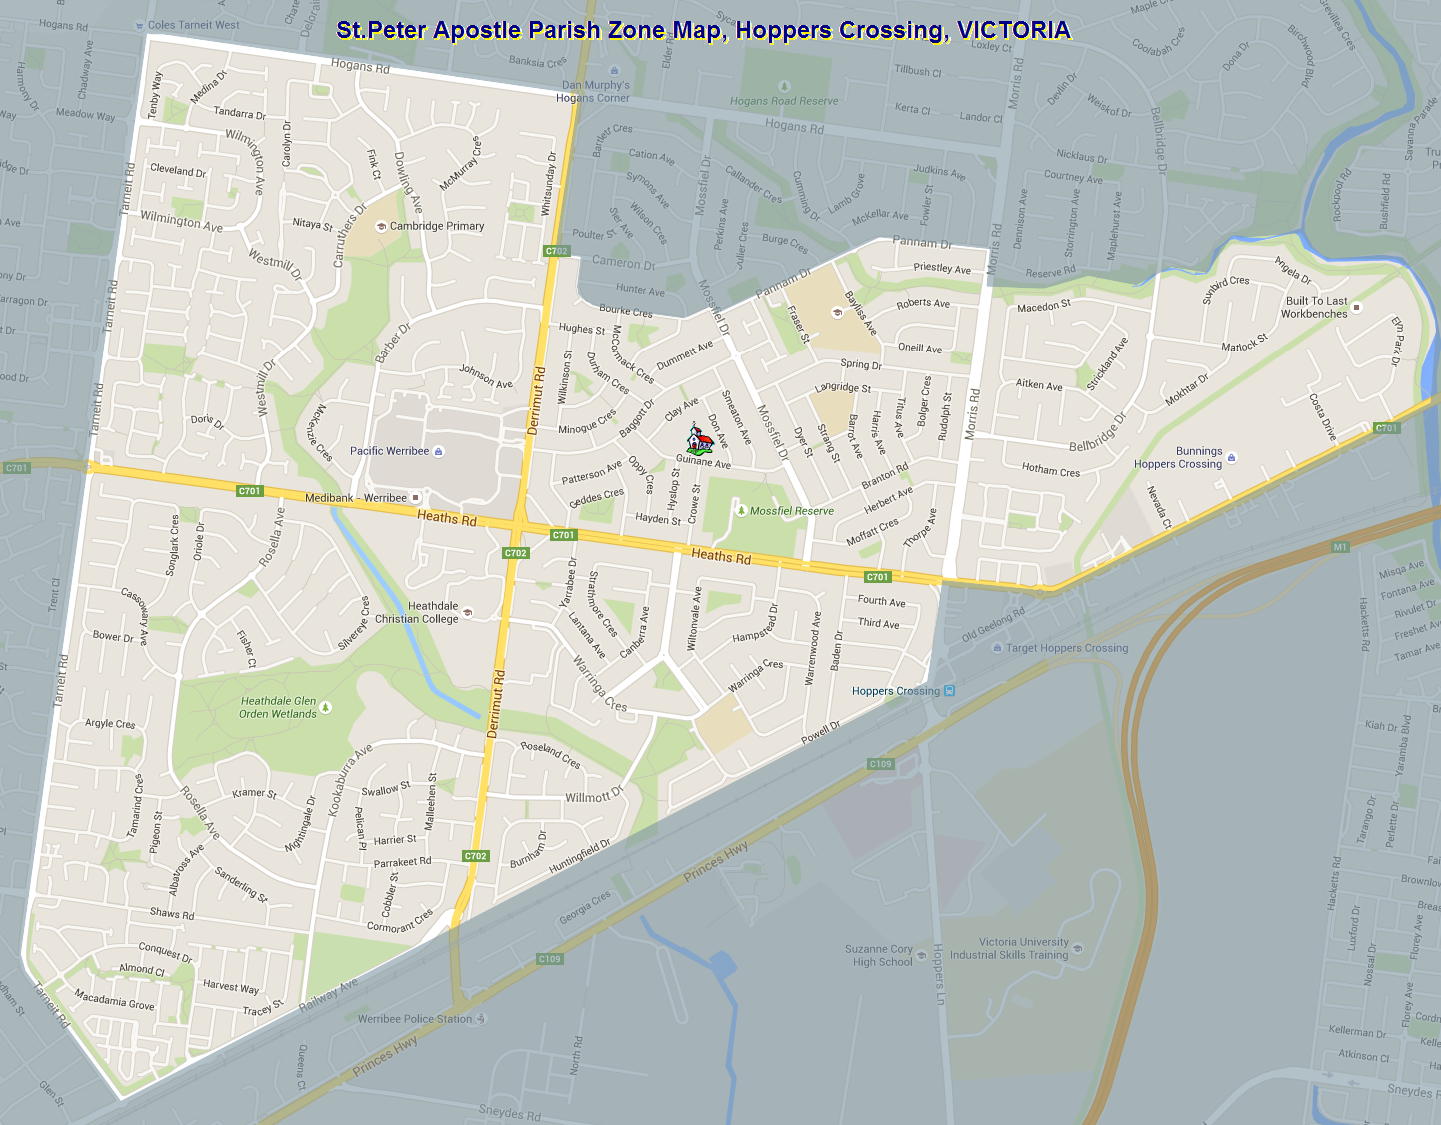 St.Peter Apostle Parish Zoning Map